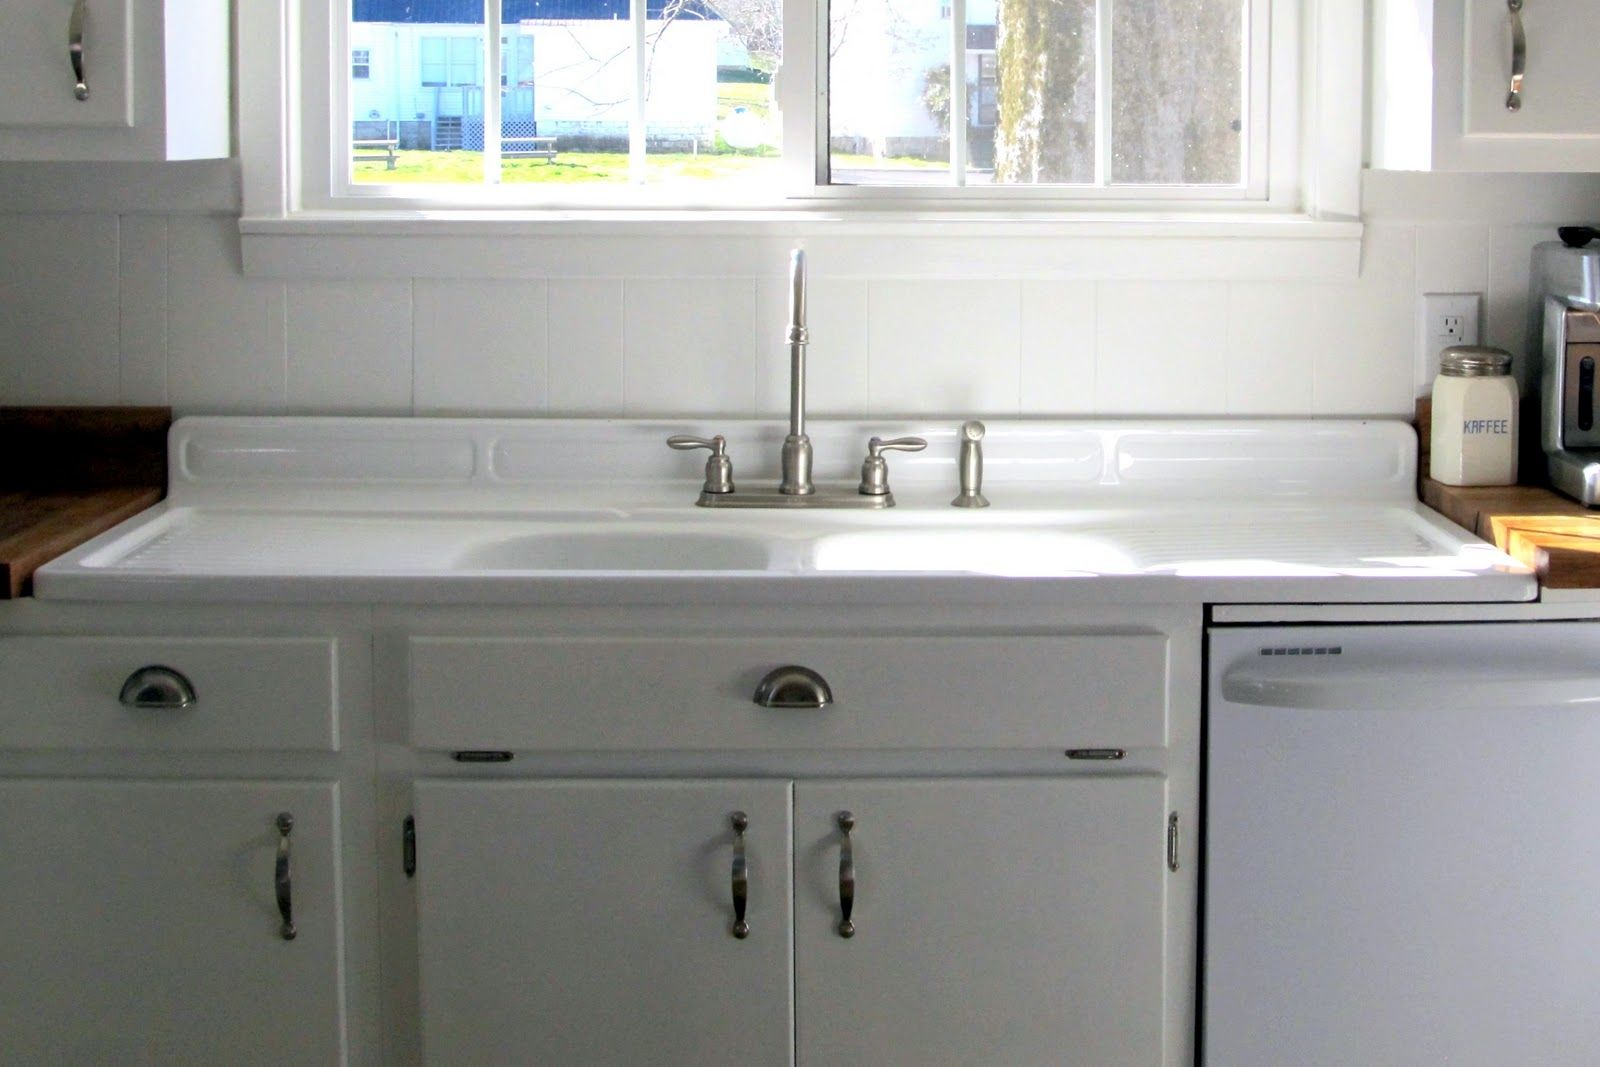 Antique Farmhouse Sink With Drainboard Farmhouse Sink Kitchen